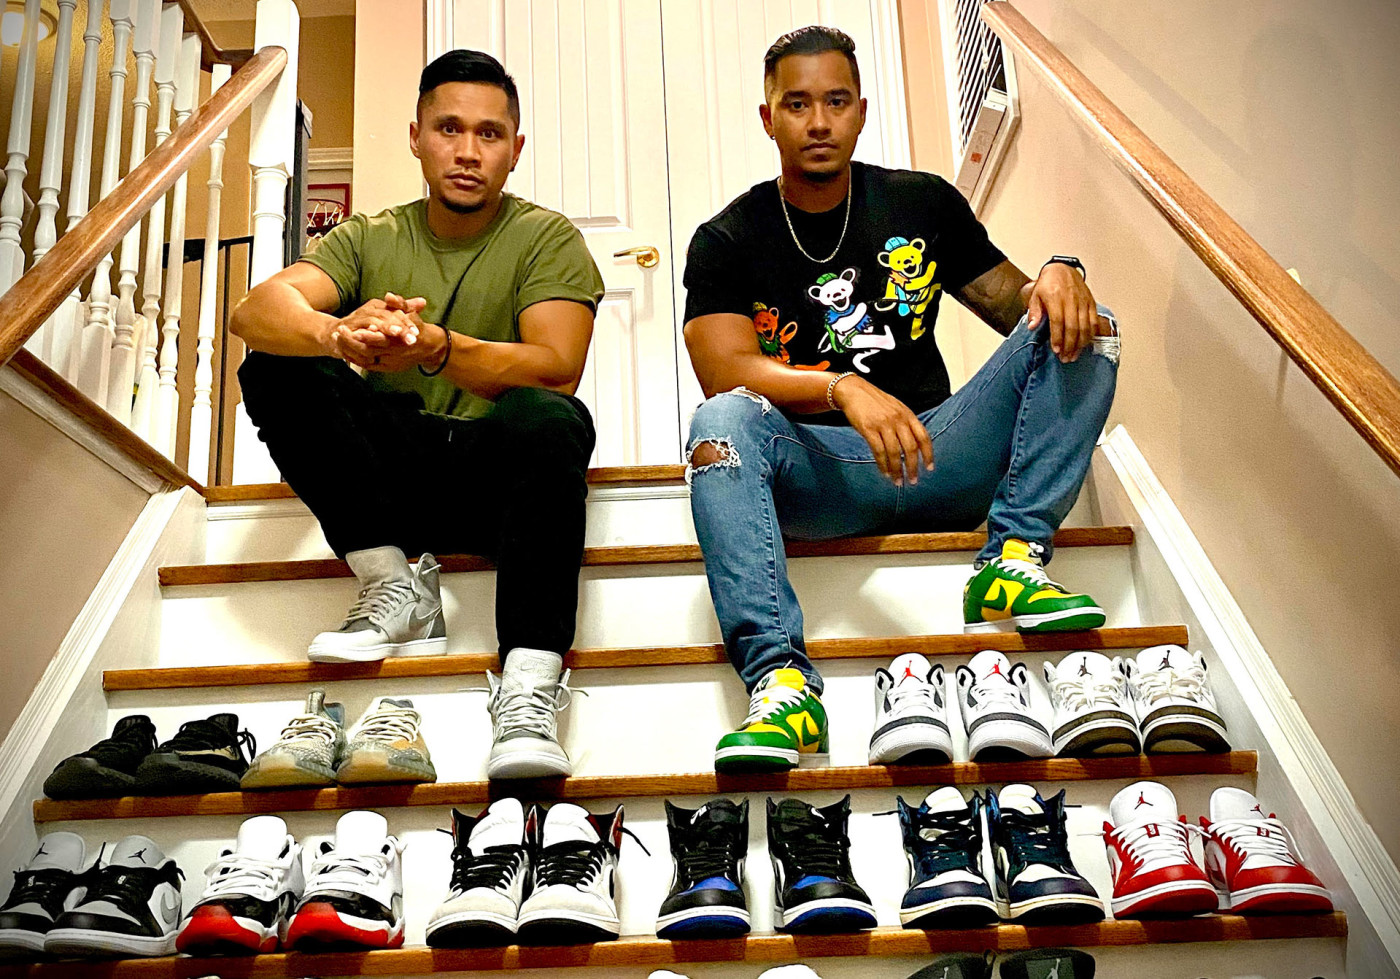 sneakersourceto-toronto-sneaker-resellers-sitting-with-rows-of-shoes